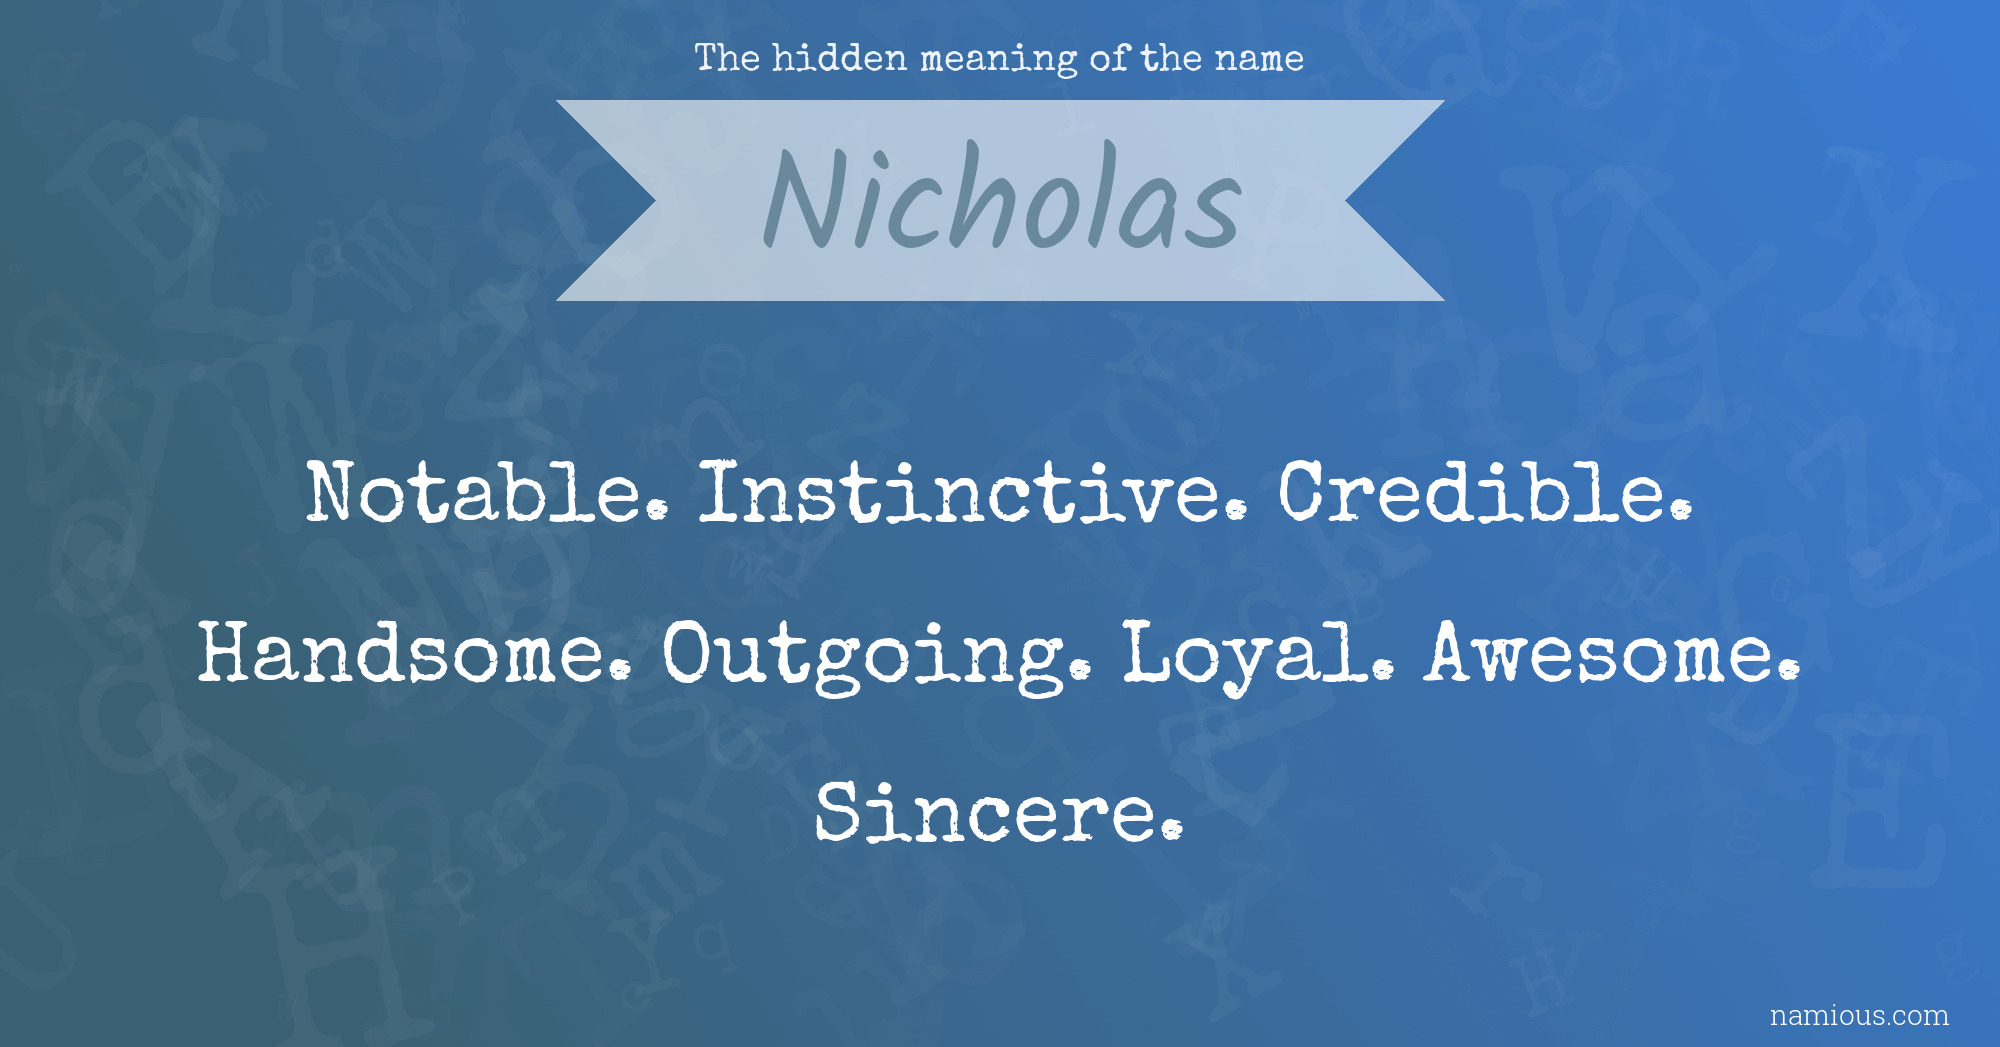 The hidden meaning of the name Nicholas